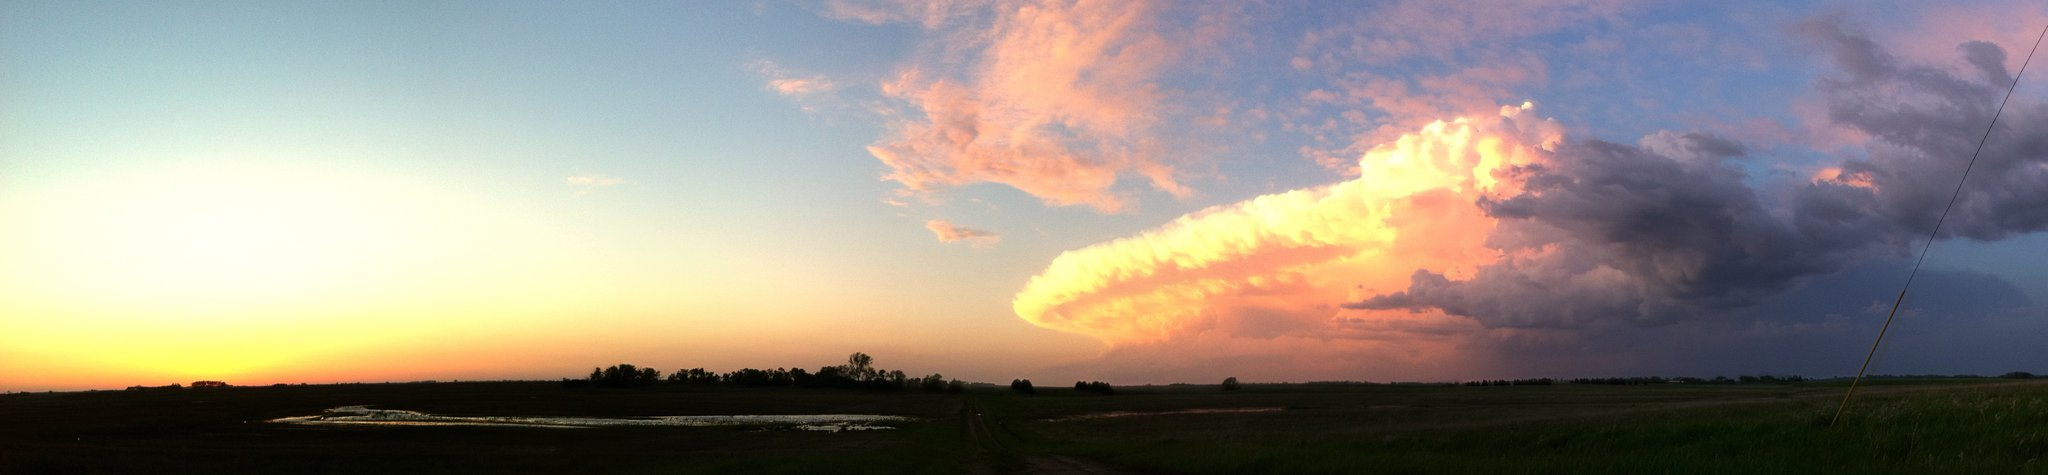 Sunset supercell east of Minot, ND